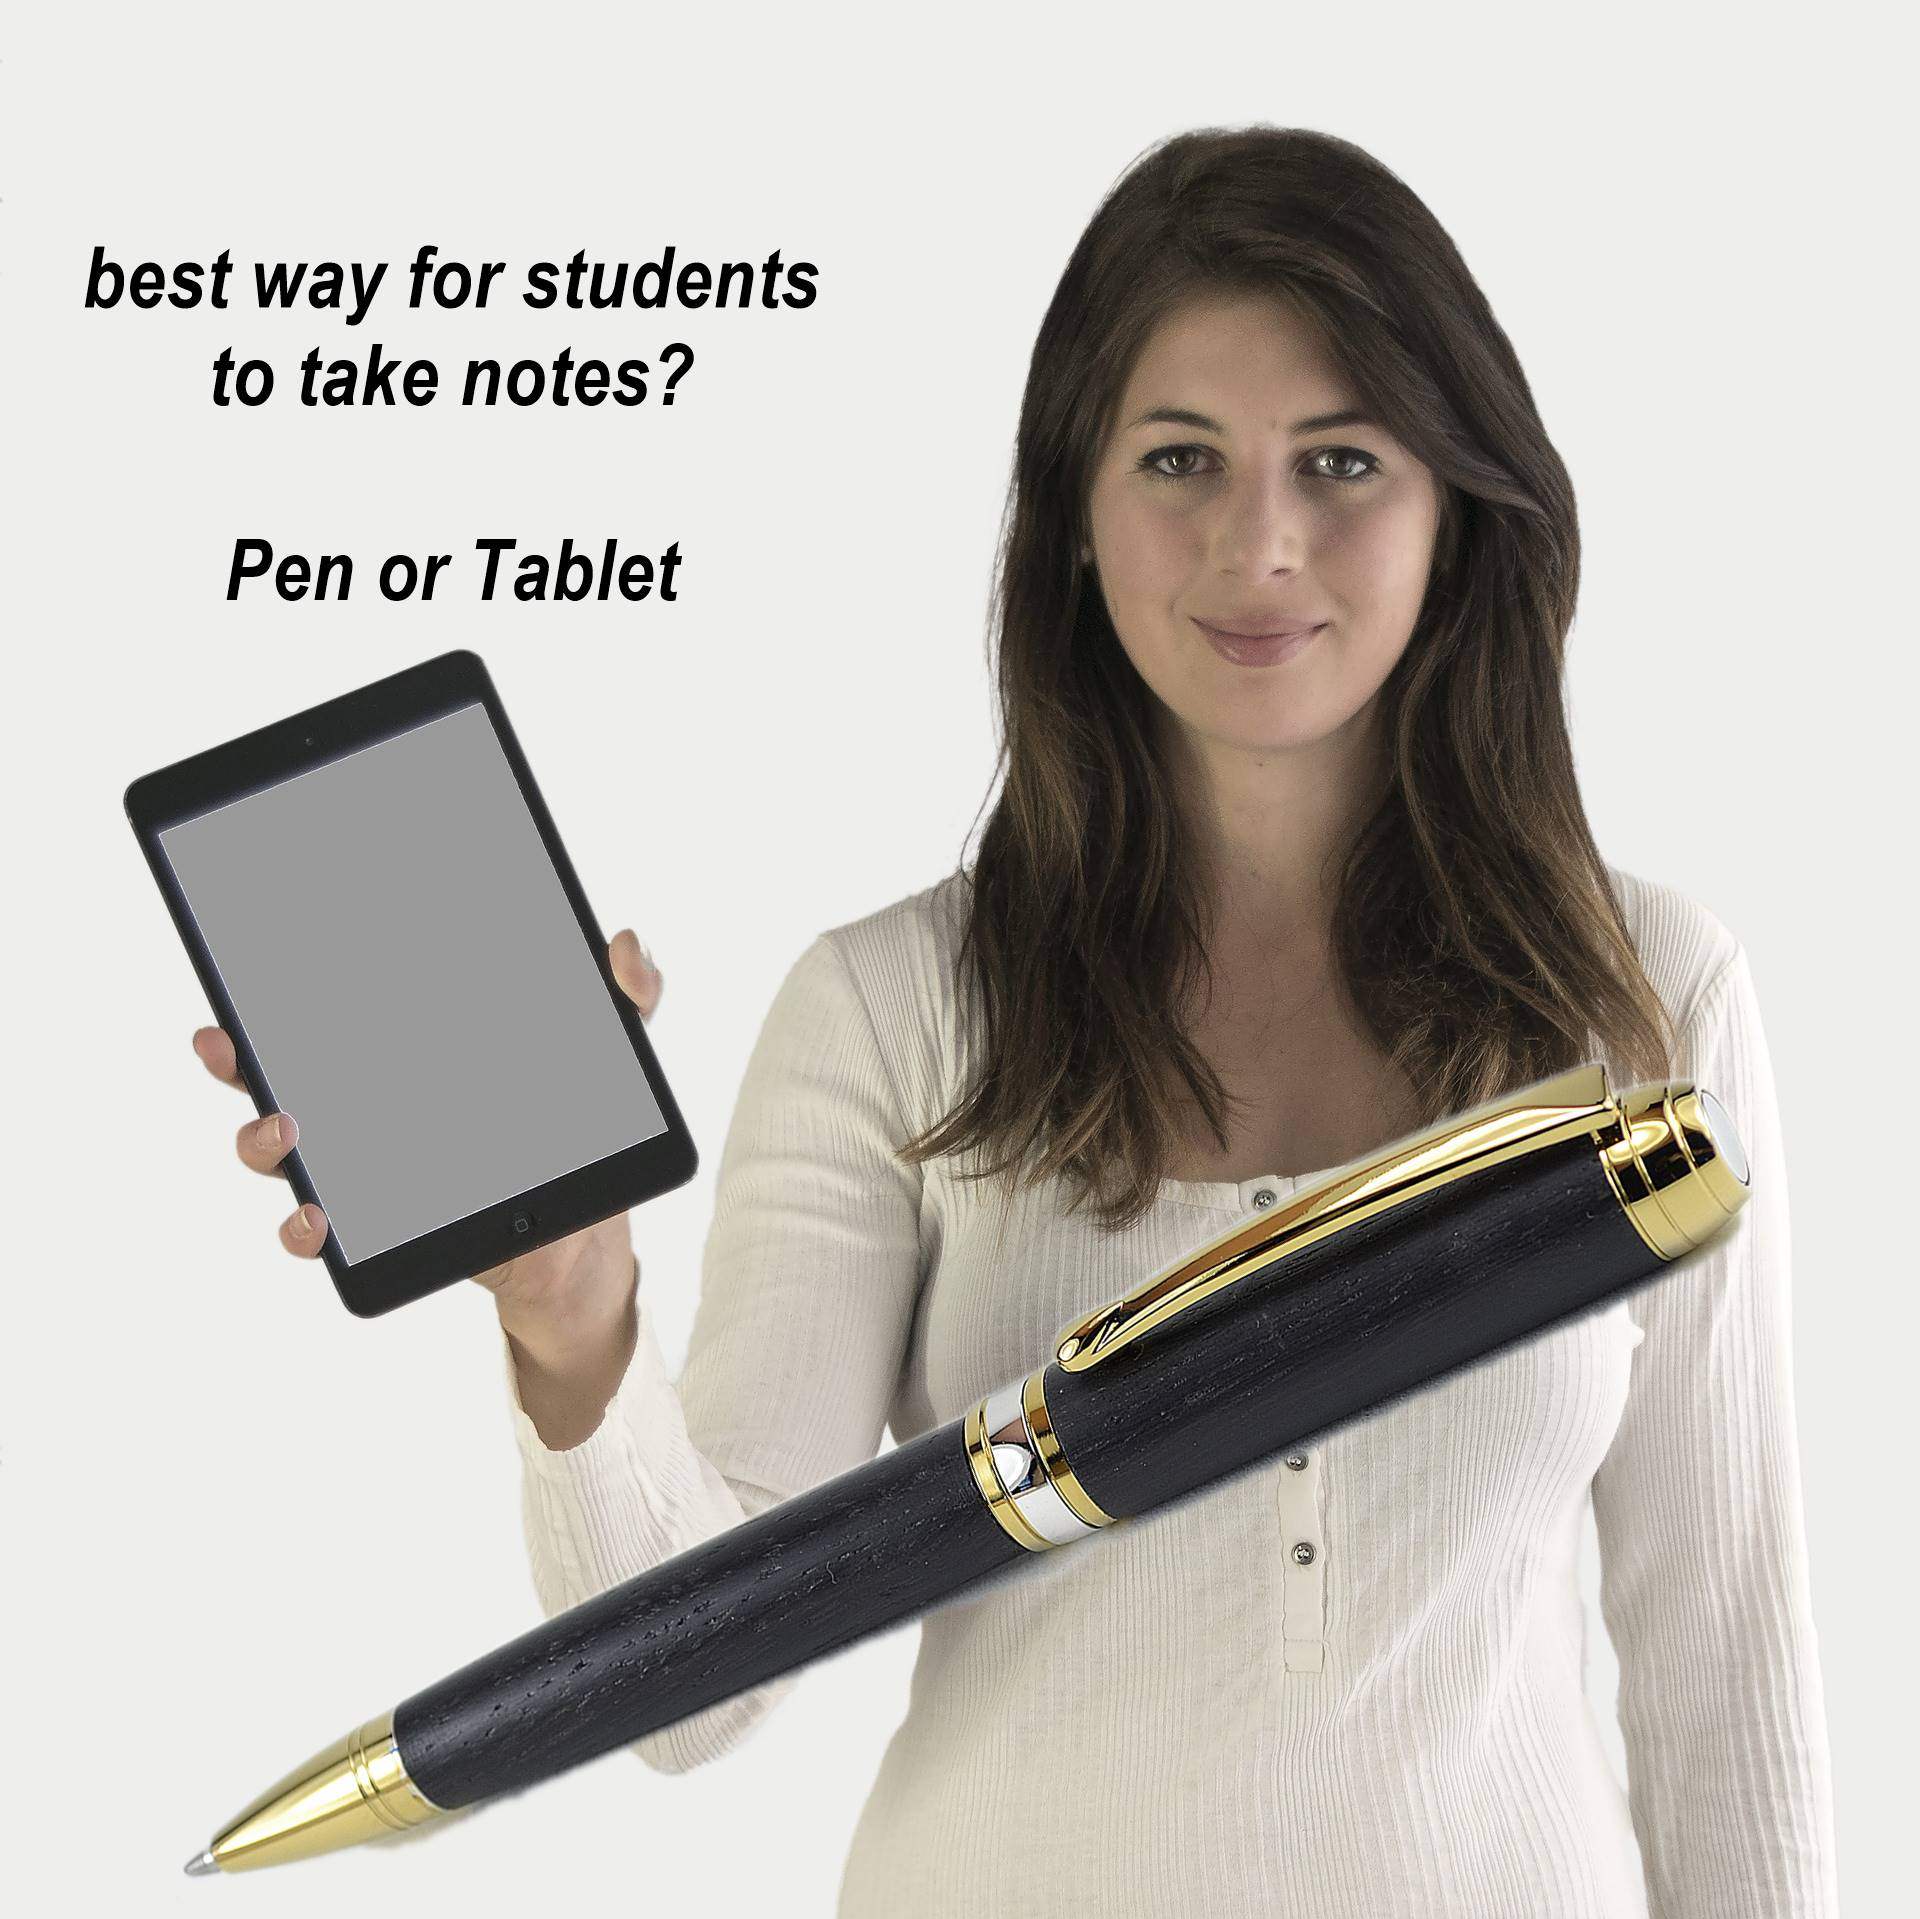 Note-taking: pen and paper versus the laptop